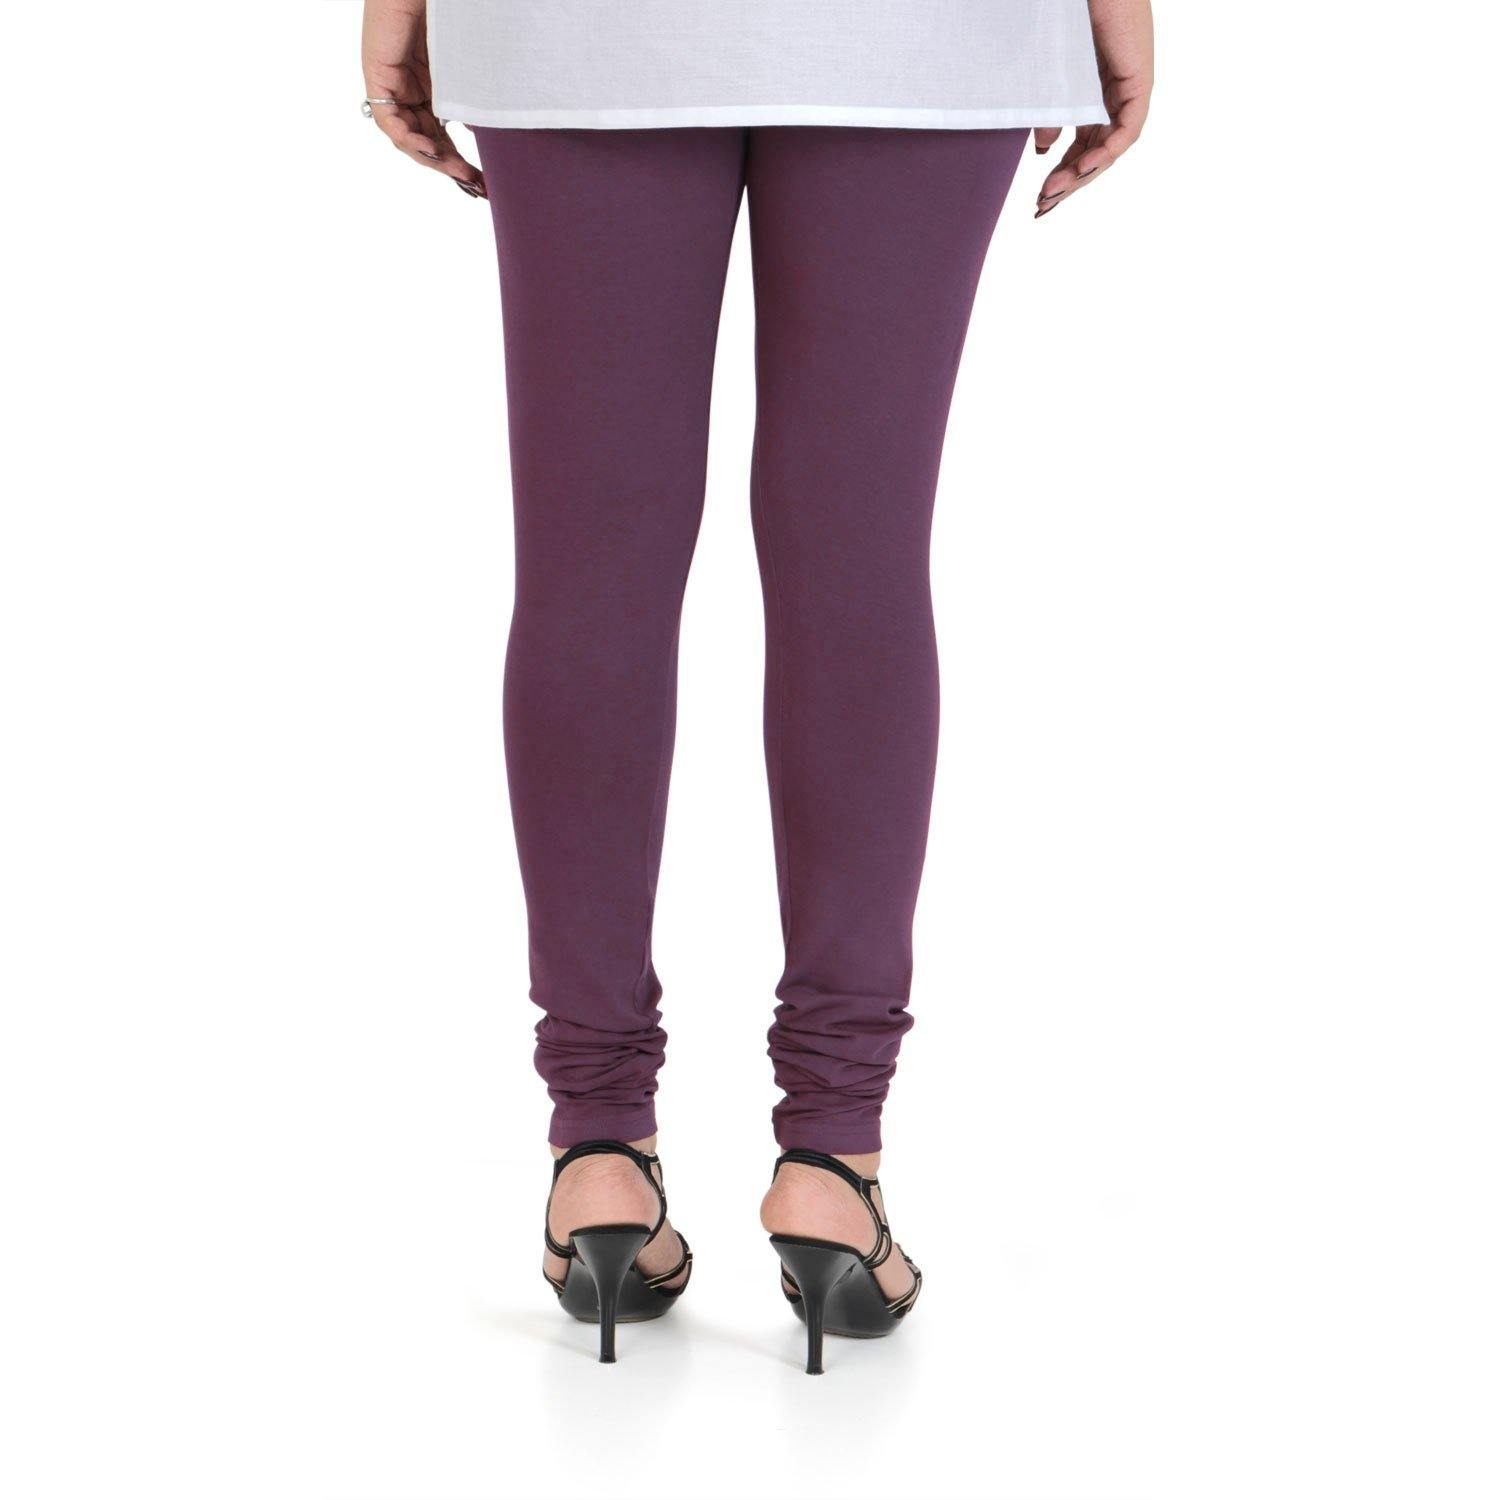 Vami Women's Cotton Stretchable Churidar Legging - BlackBerry Wine